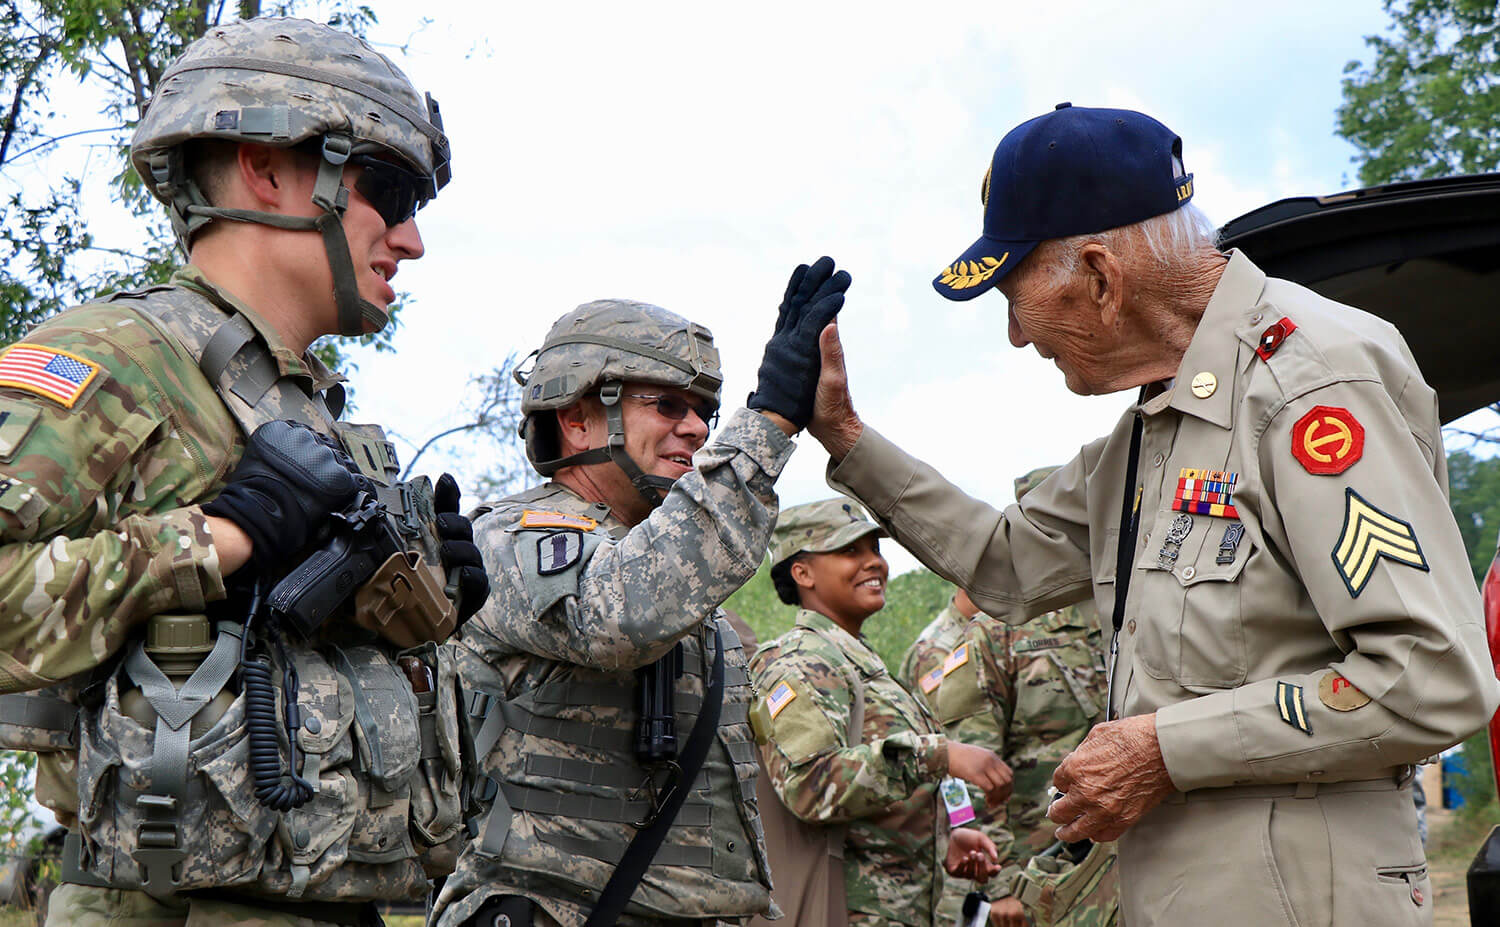 World War II Veteran Claude Cawood gives 1SG Jeffery Lemire, Battery A, 1st Battalion, 103rd Field Artillery Regiment, Rhode Island Army National Guard, a high-five after firing the M777 Howitzer this past August at Camp Grayling, Mich. Cawood, who served three years in the Philippines and was a former section chief on the M105 Howitzer, took the opportunity to visit Soldiers supporting the Northern Strike 2018 exercise. Iowa Army National Guard photo by 1SG Sara Robinson